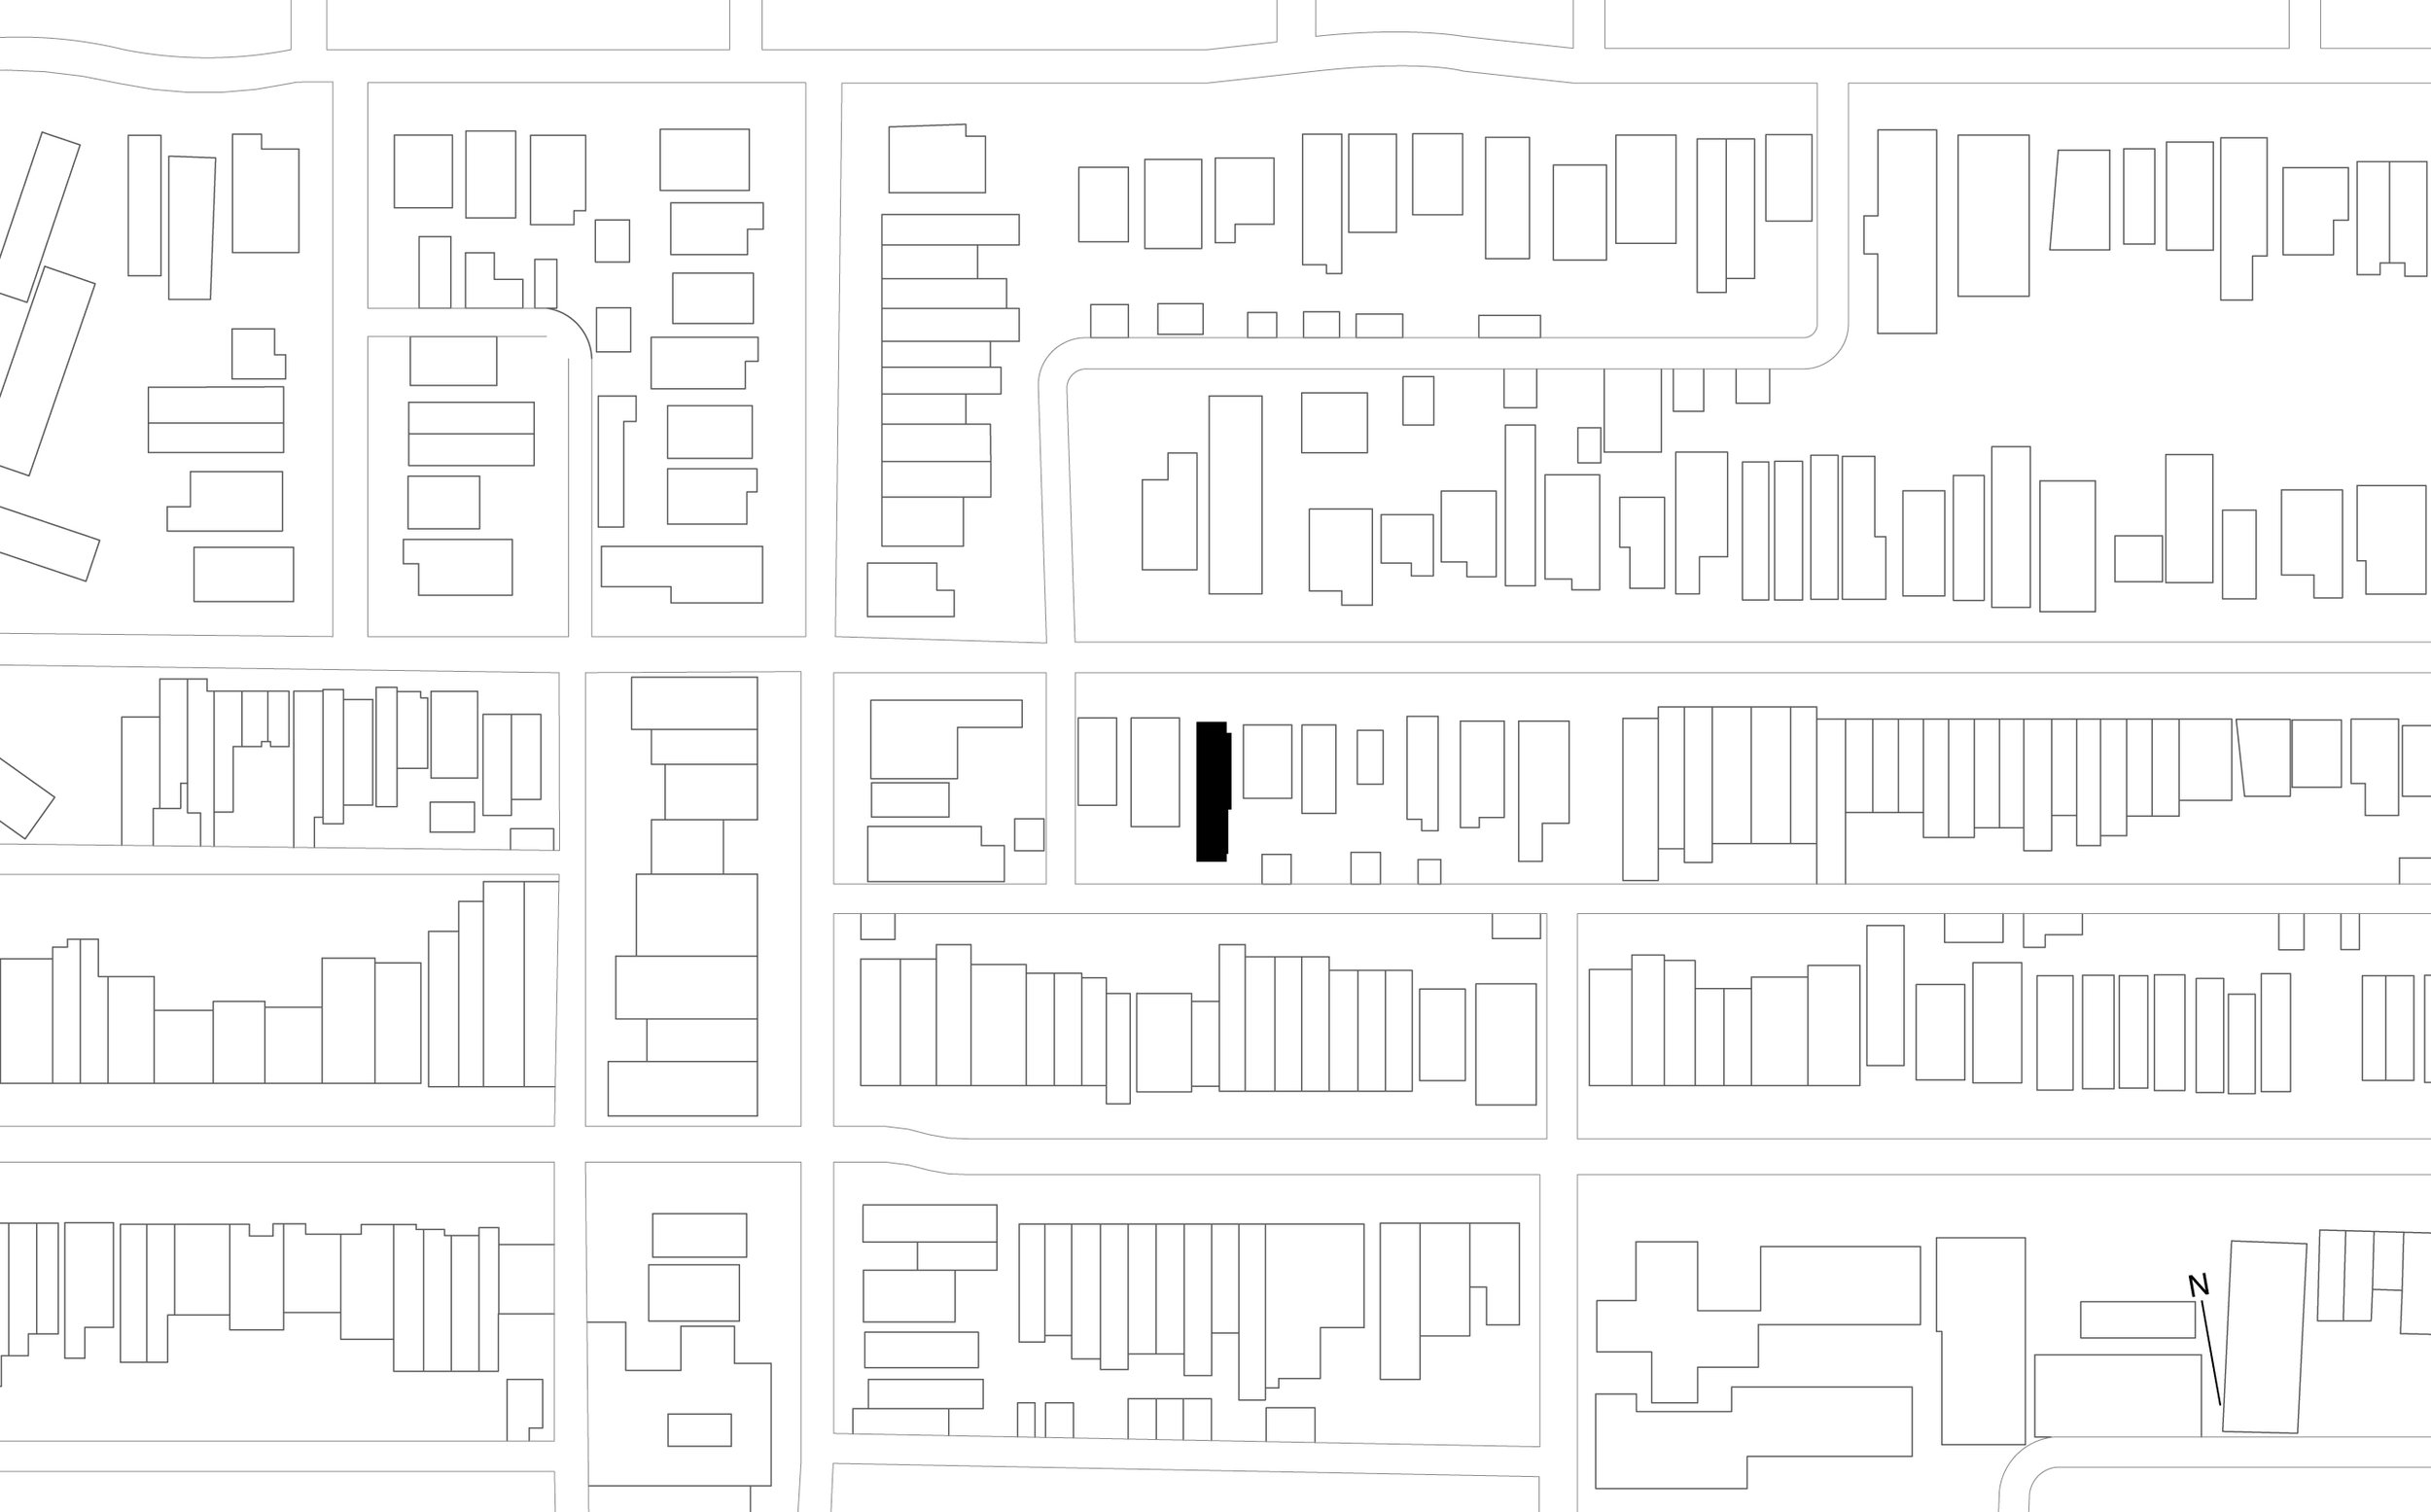 PS01_Clauscen_Site Plan_1to2500.jpg